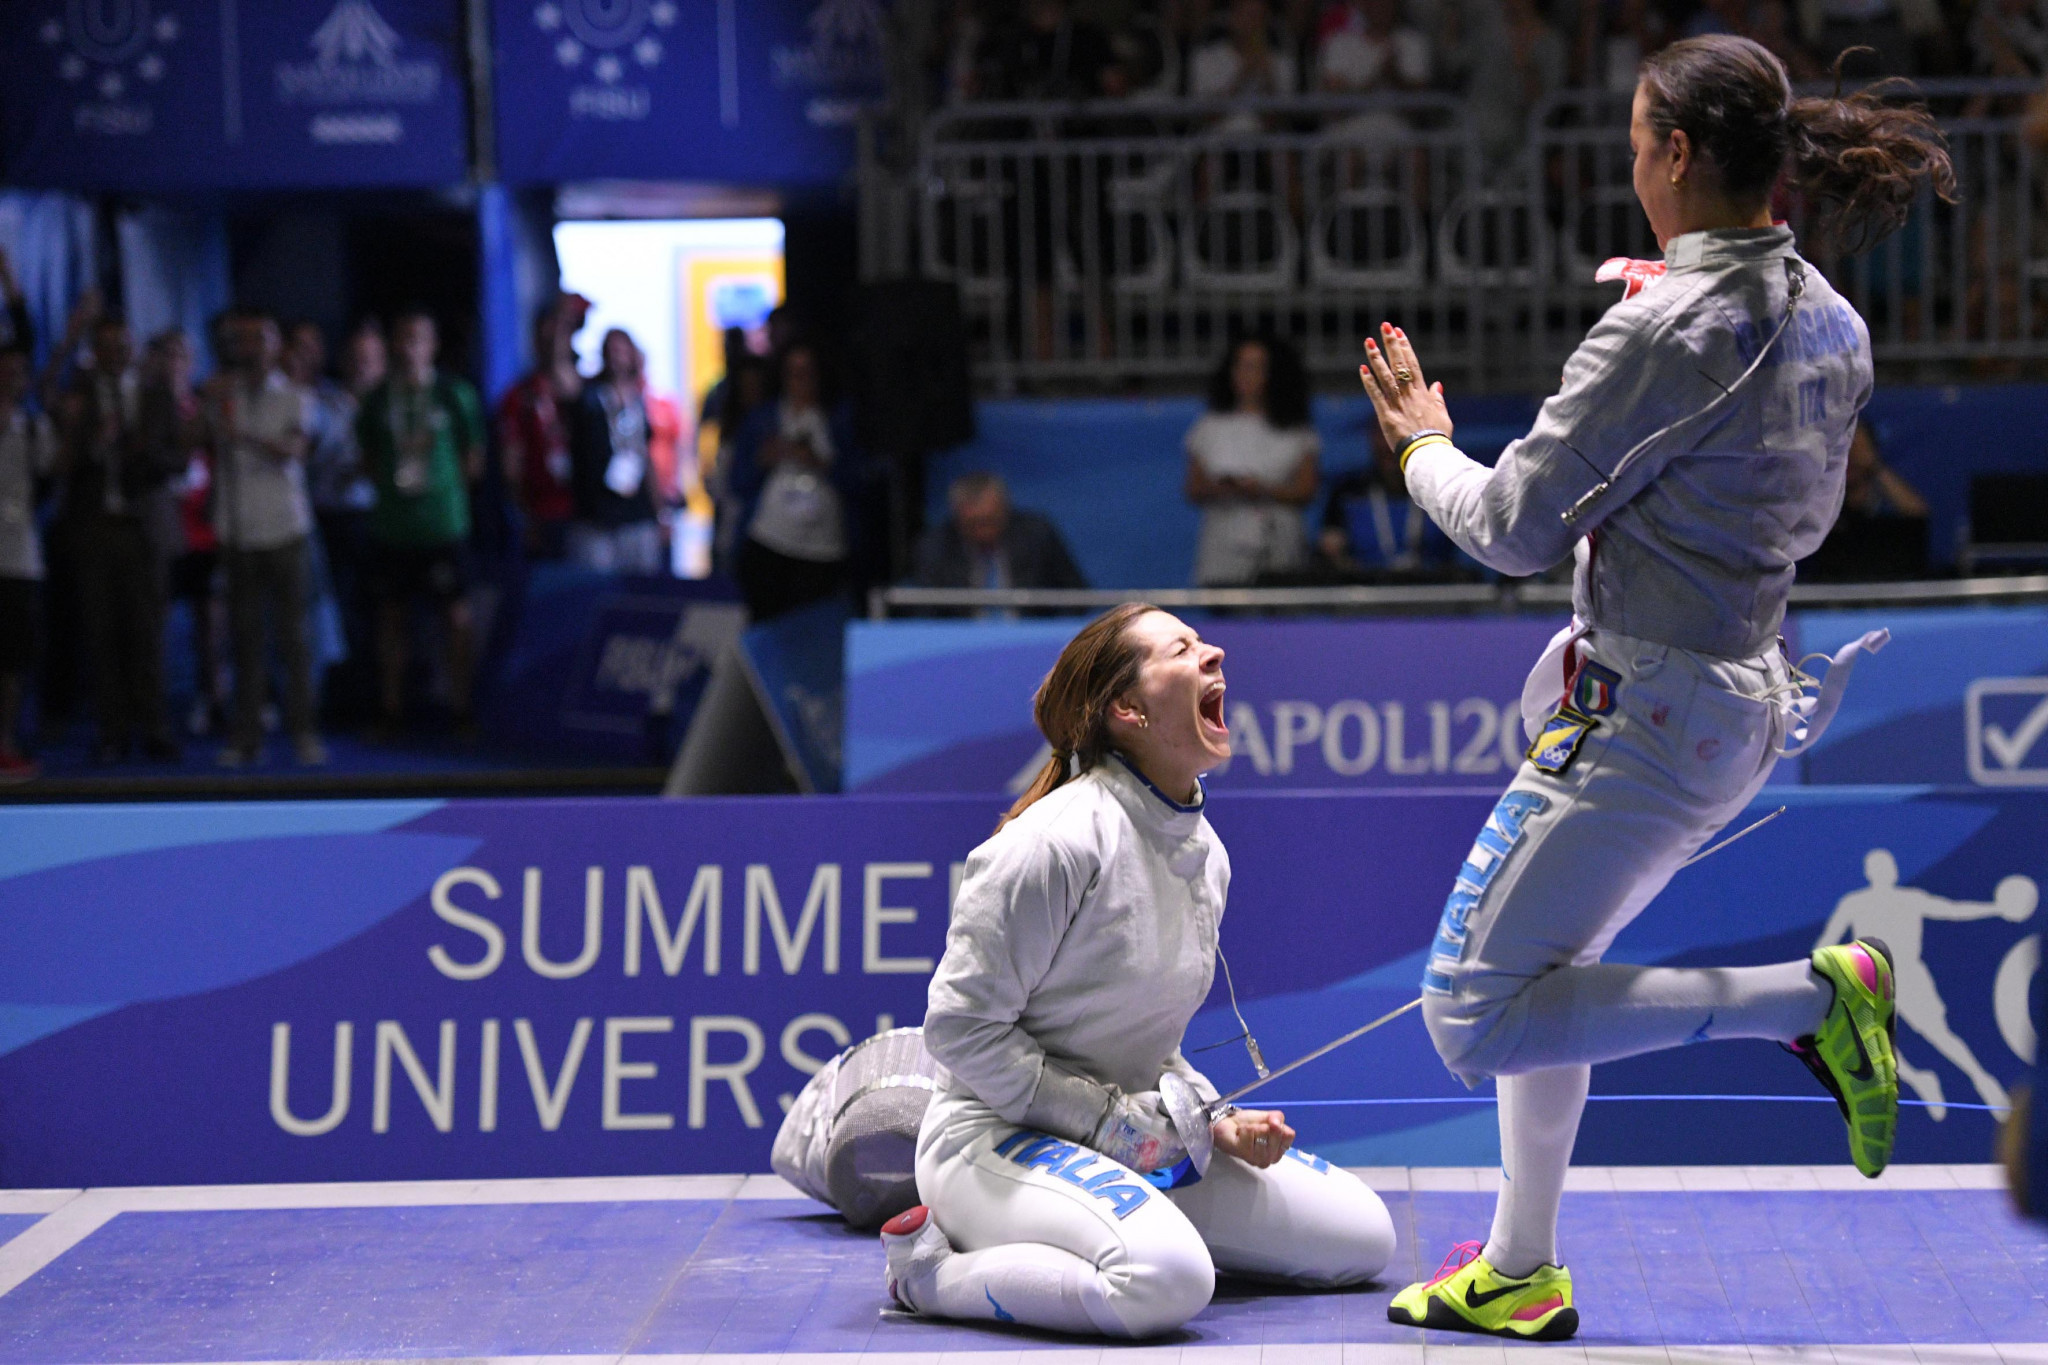 Italy won two gold medals on the last day of fencing at Naples 2019 ©Naples 2019